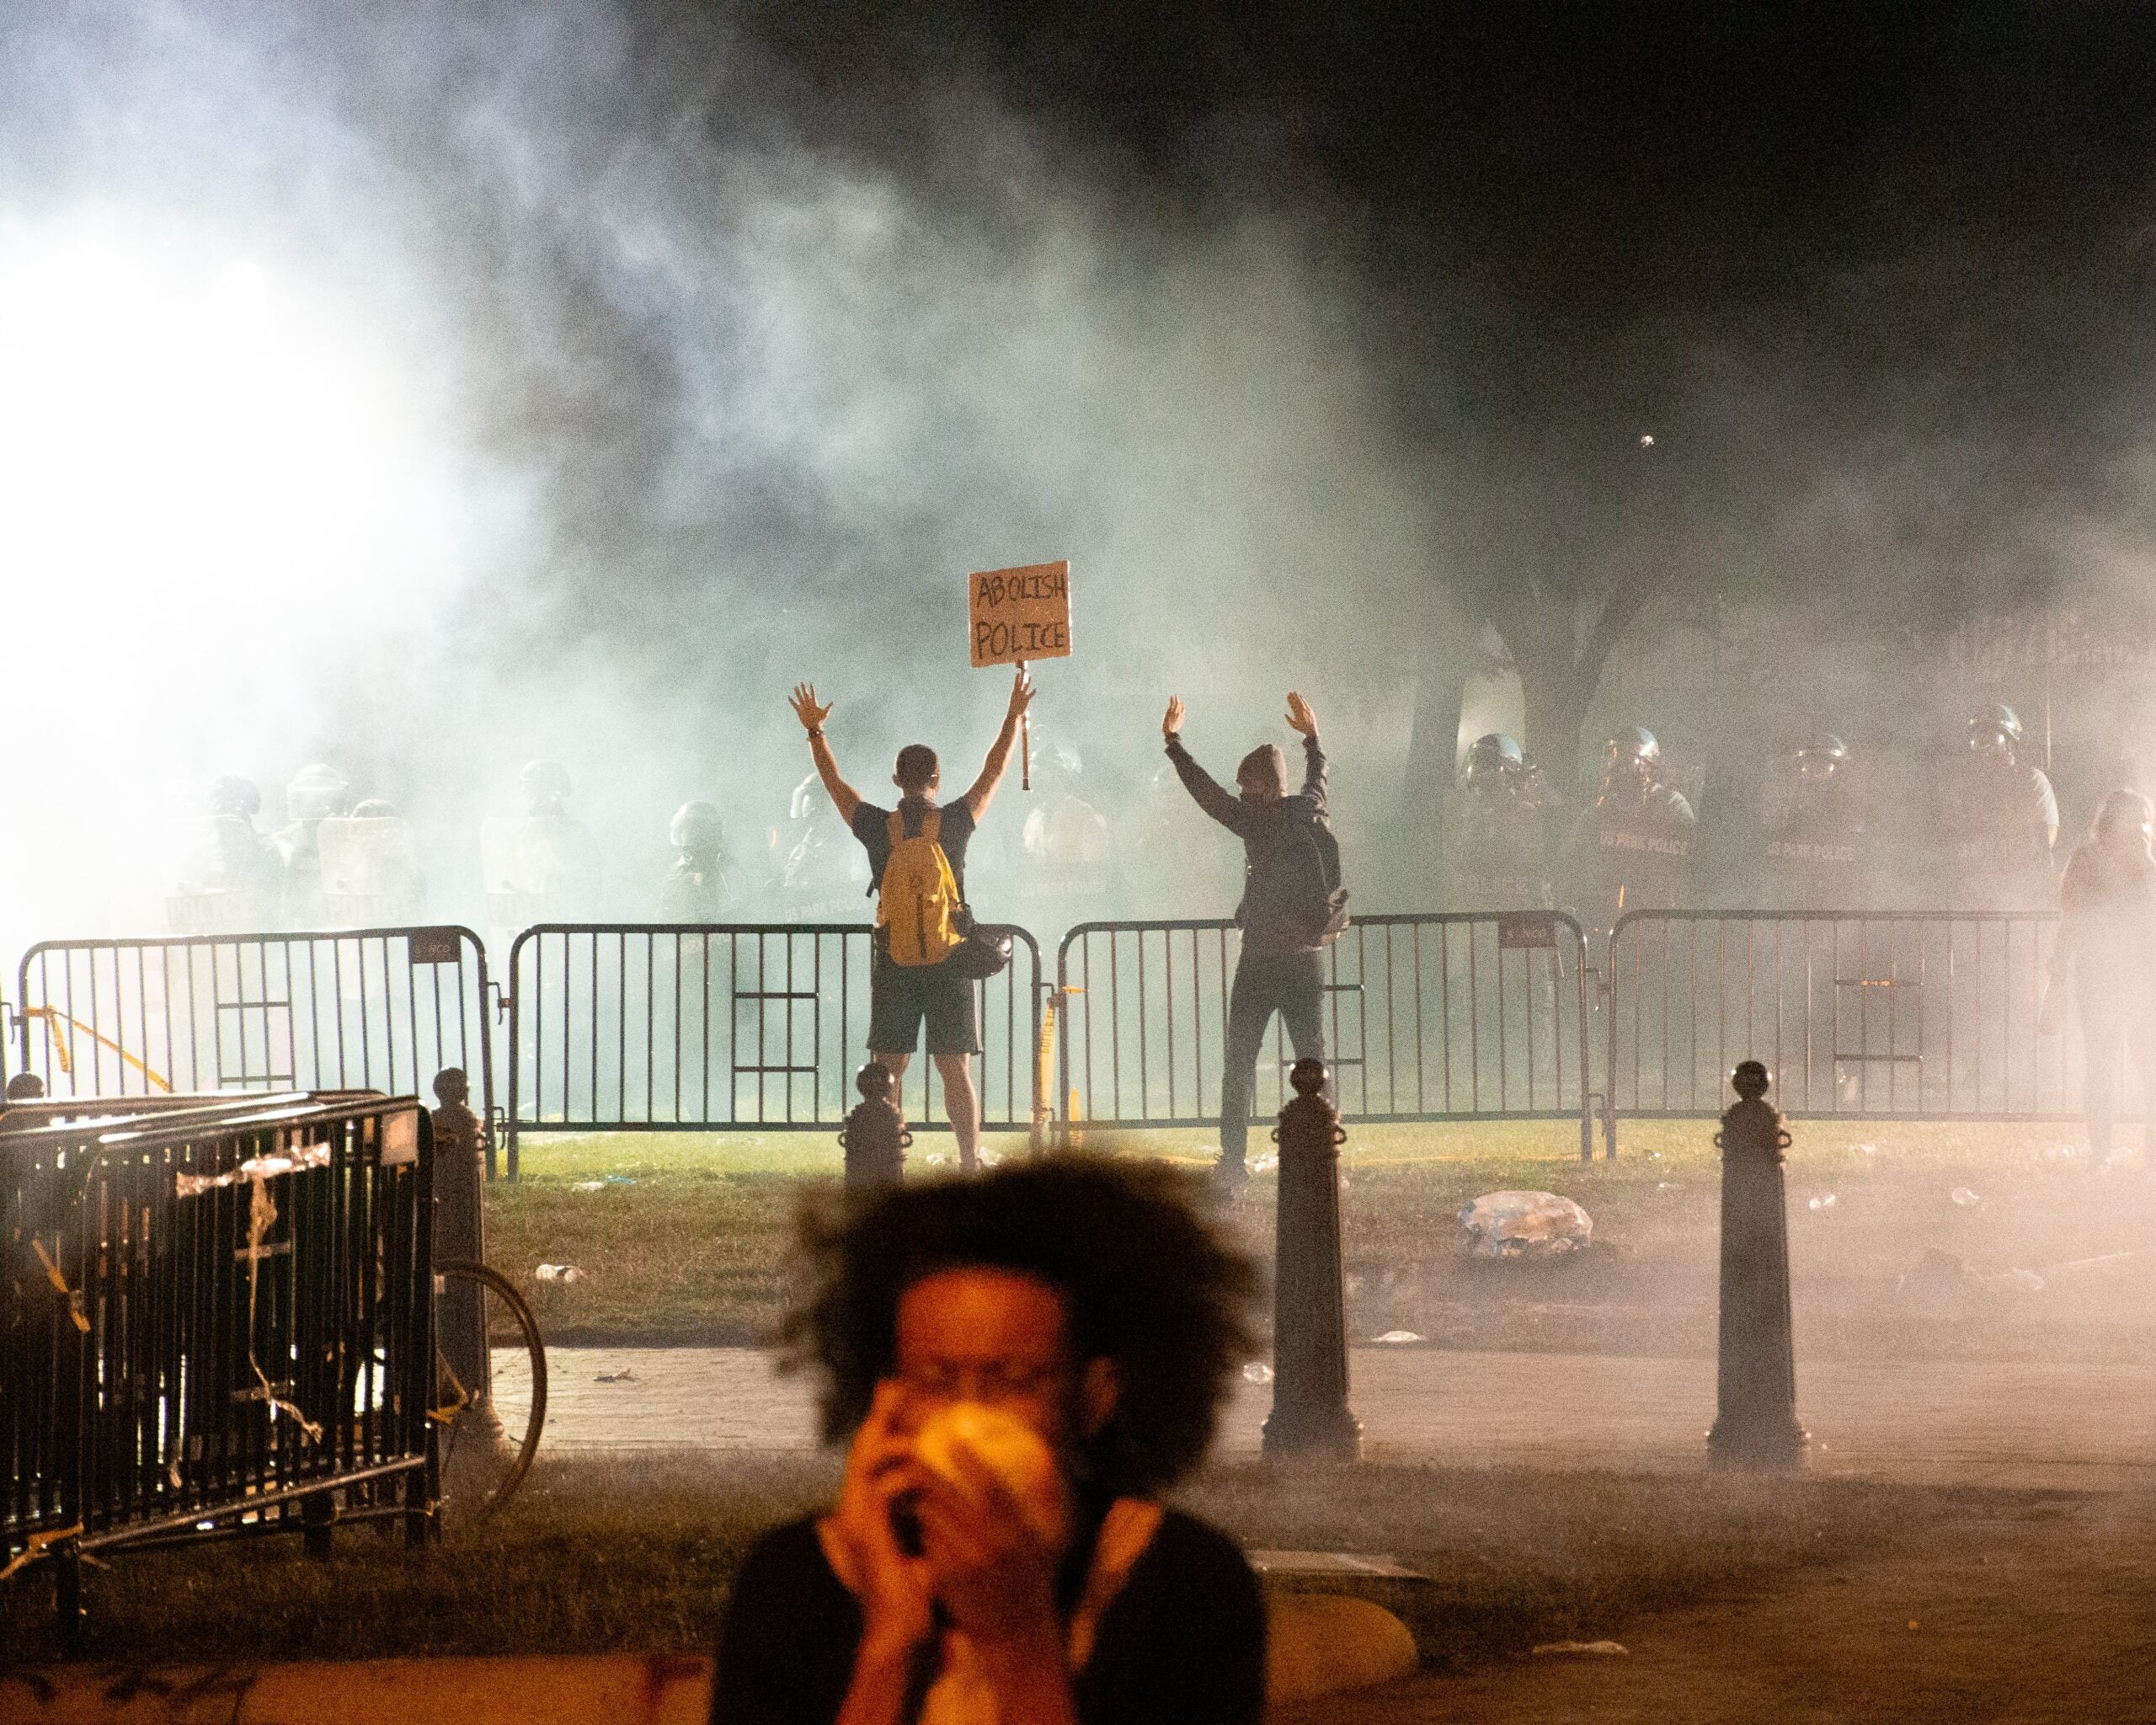 Protesters in Washington, D.C. faced off with canisters of tear gas at the end of May.